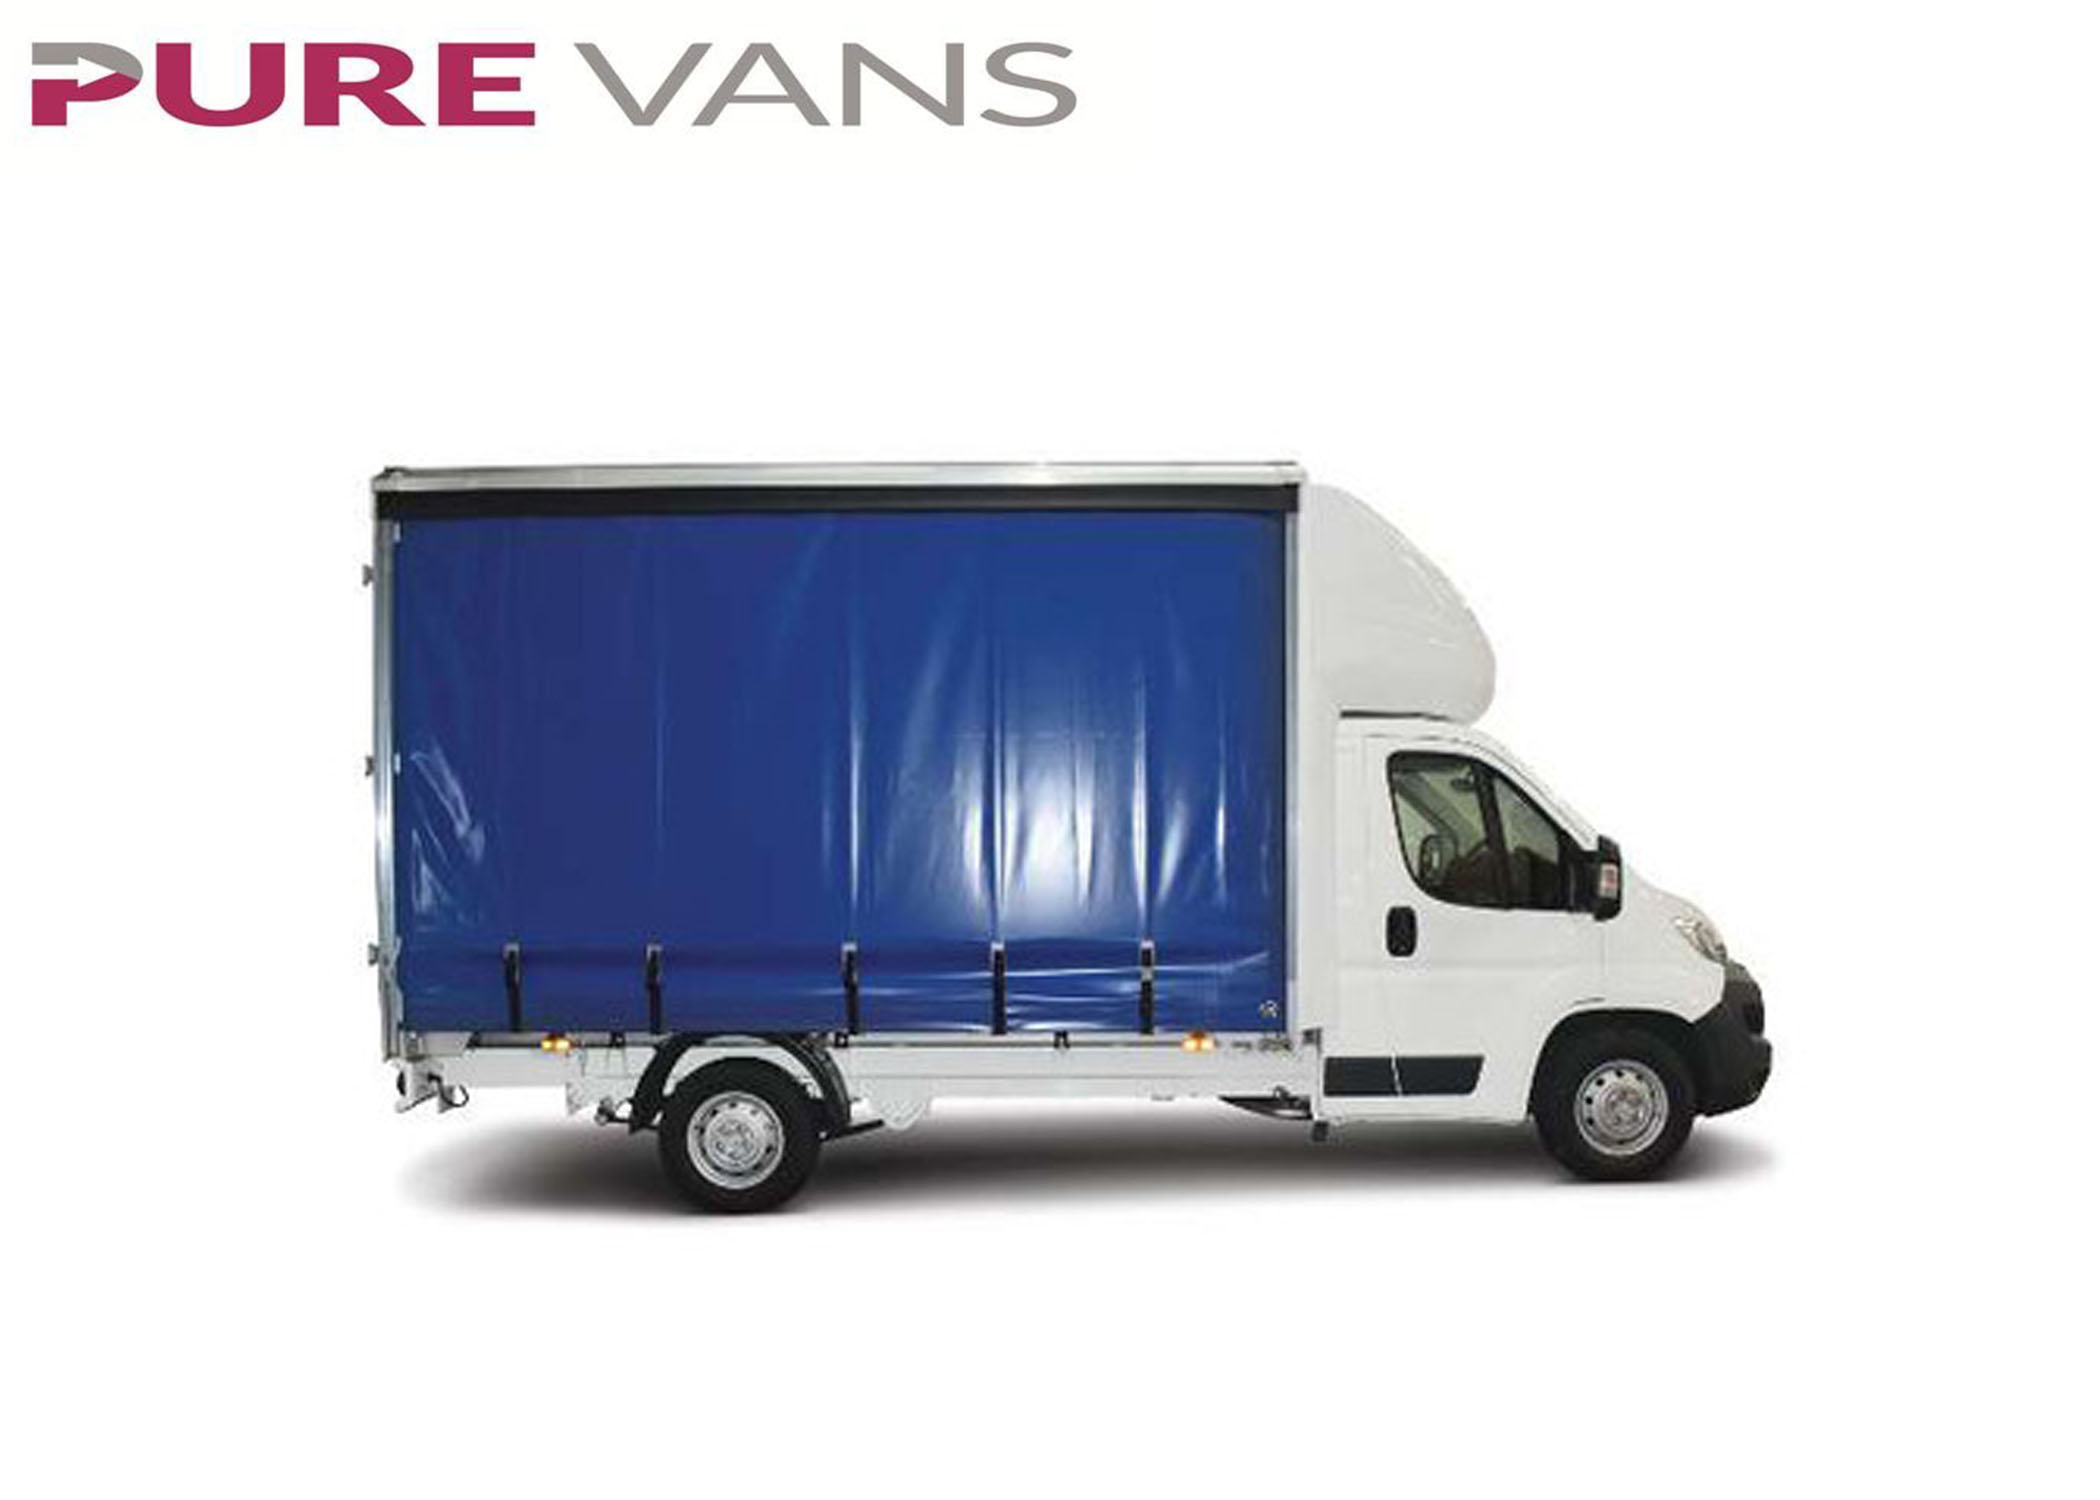 CITROEN RELAY L3 160PS CURTAIN SIDE view.jpg